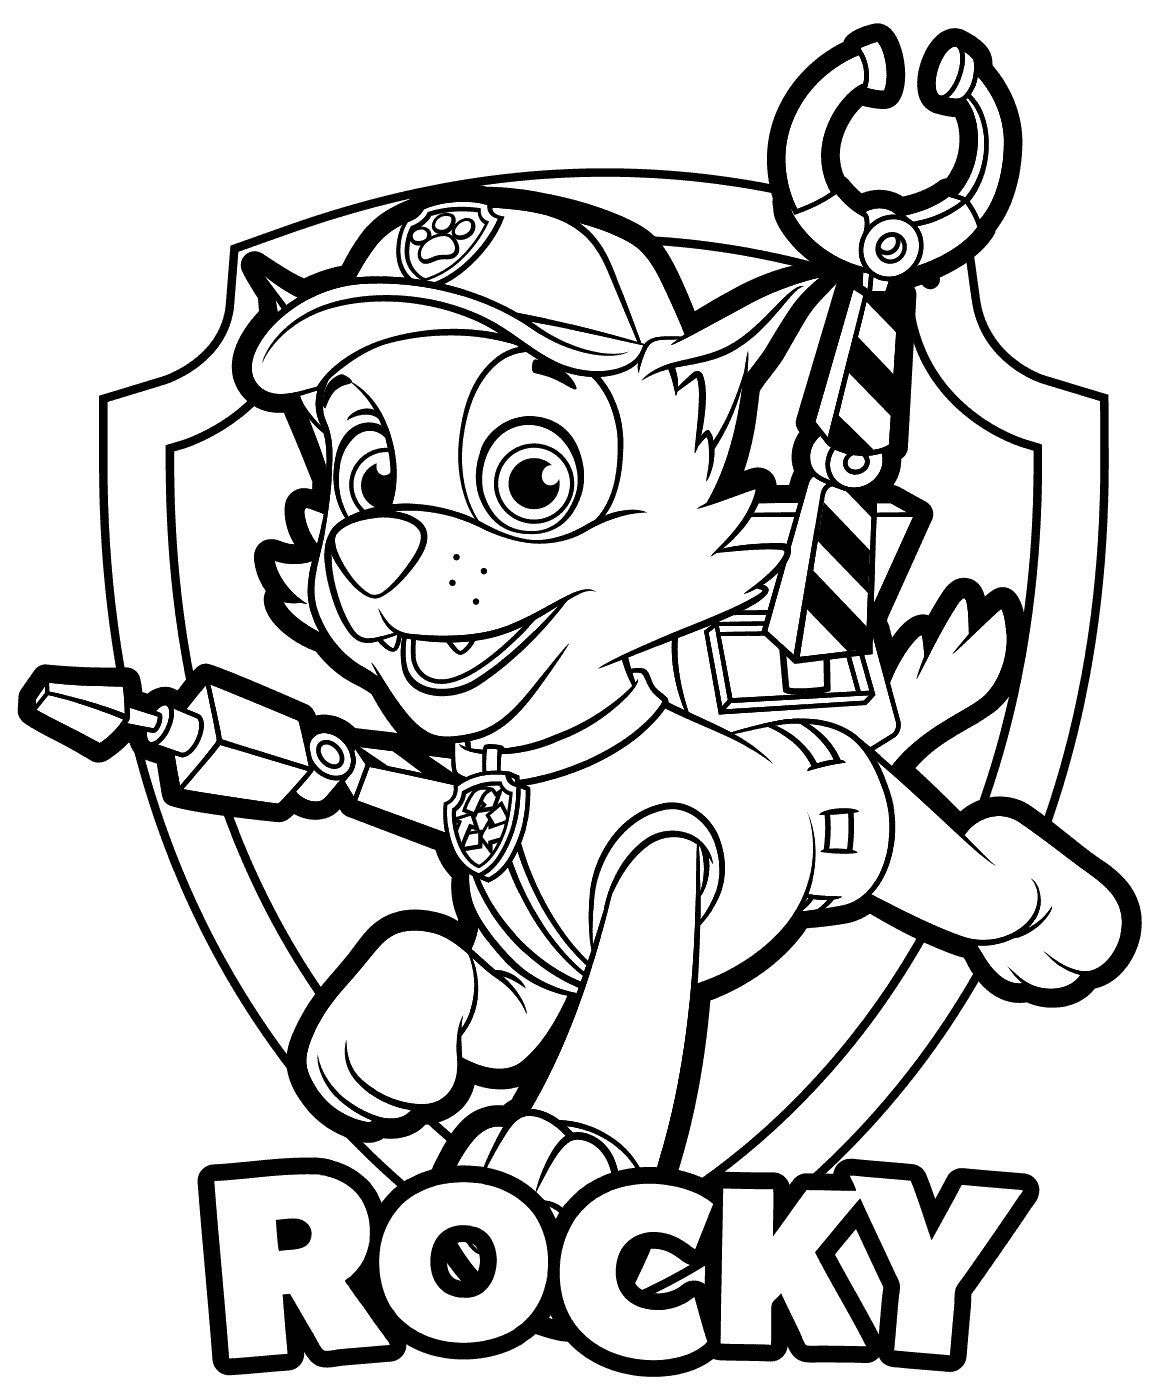 1160x1400 Paw Patrol Rocky Coloring Pages